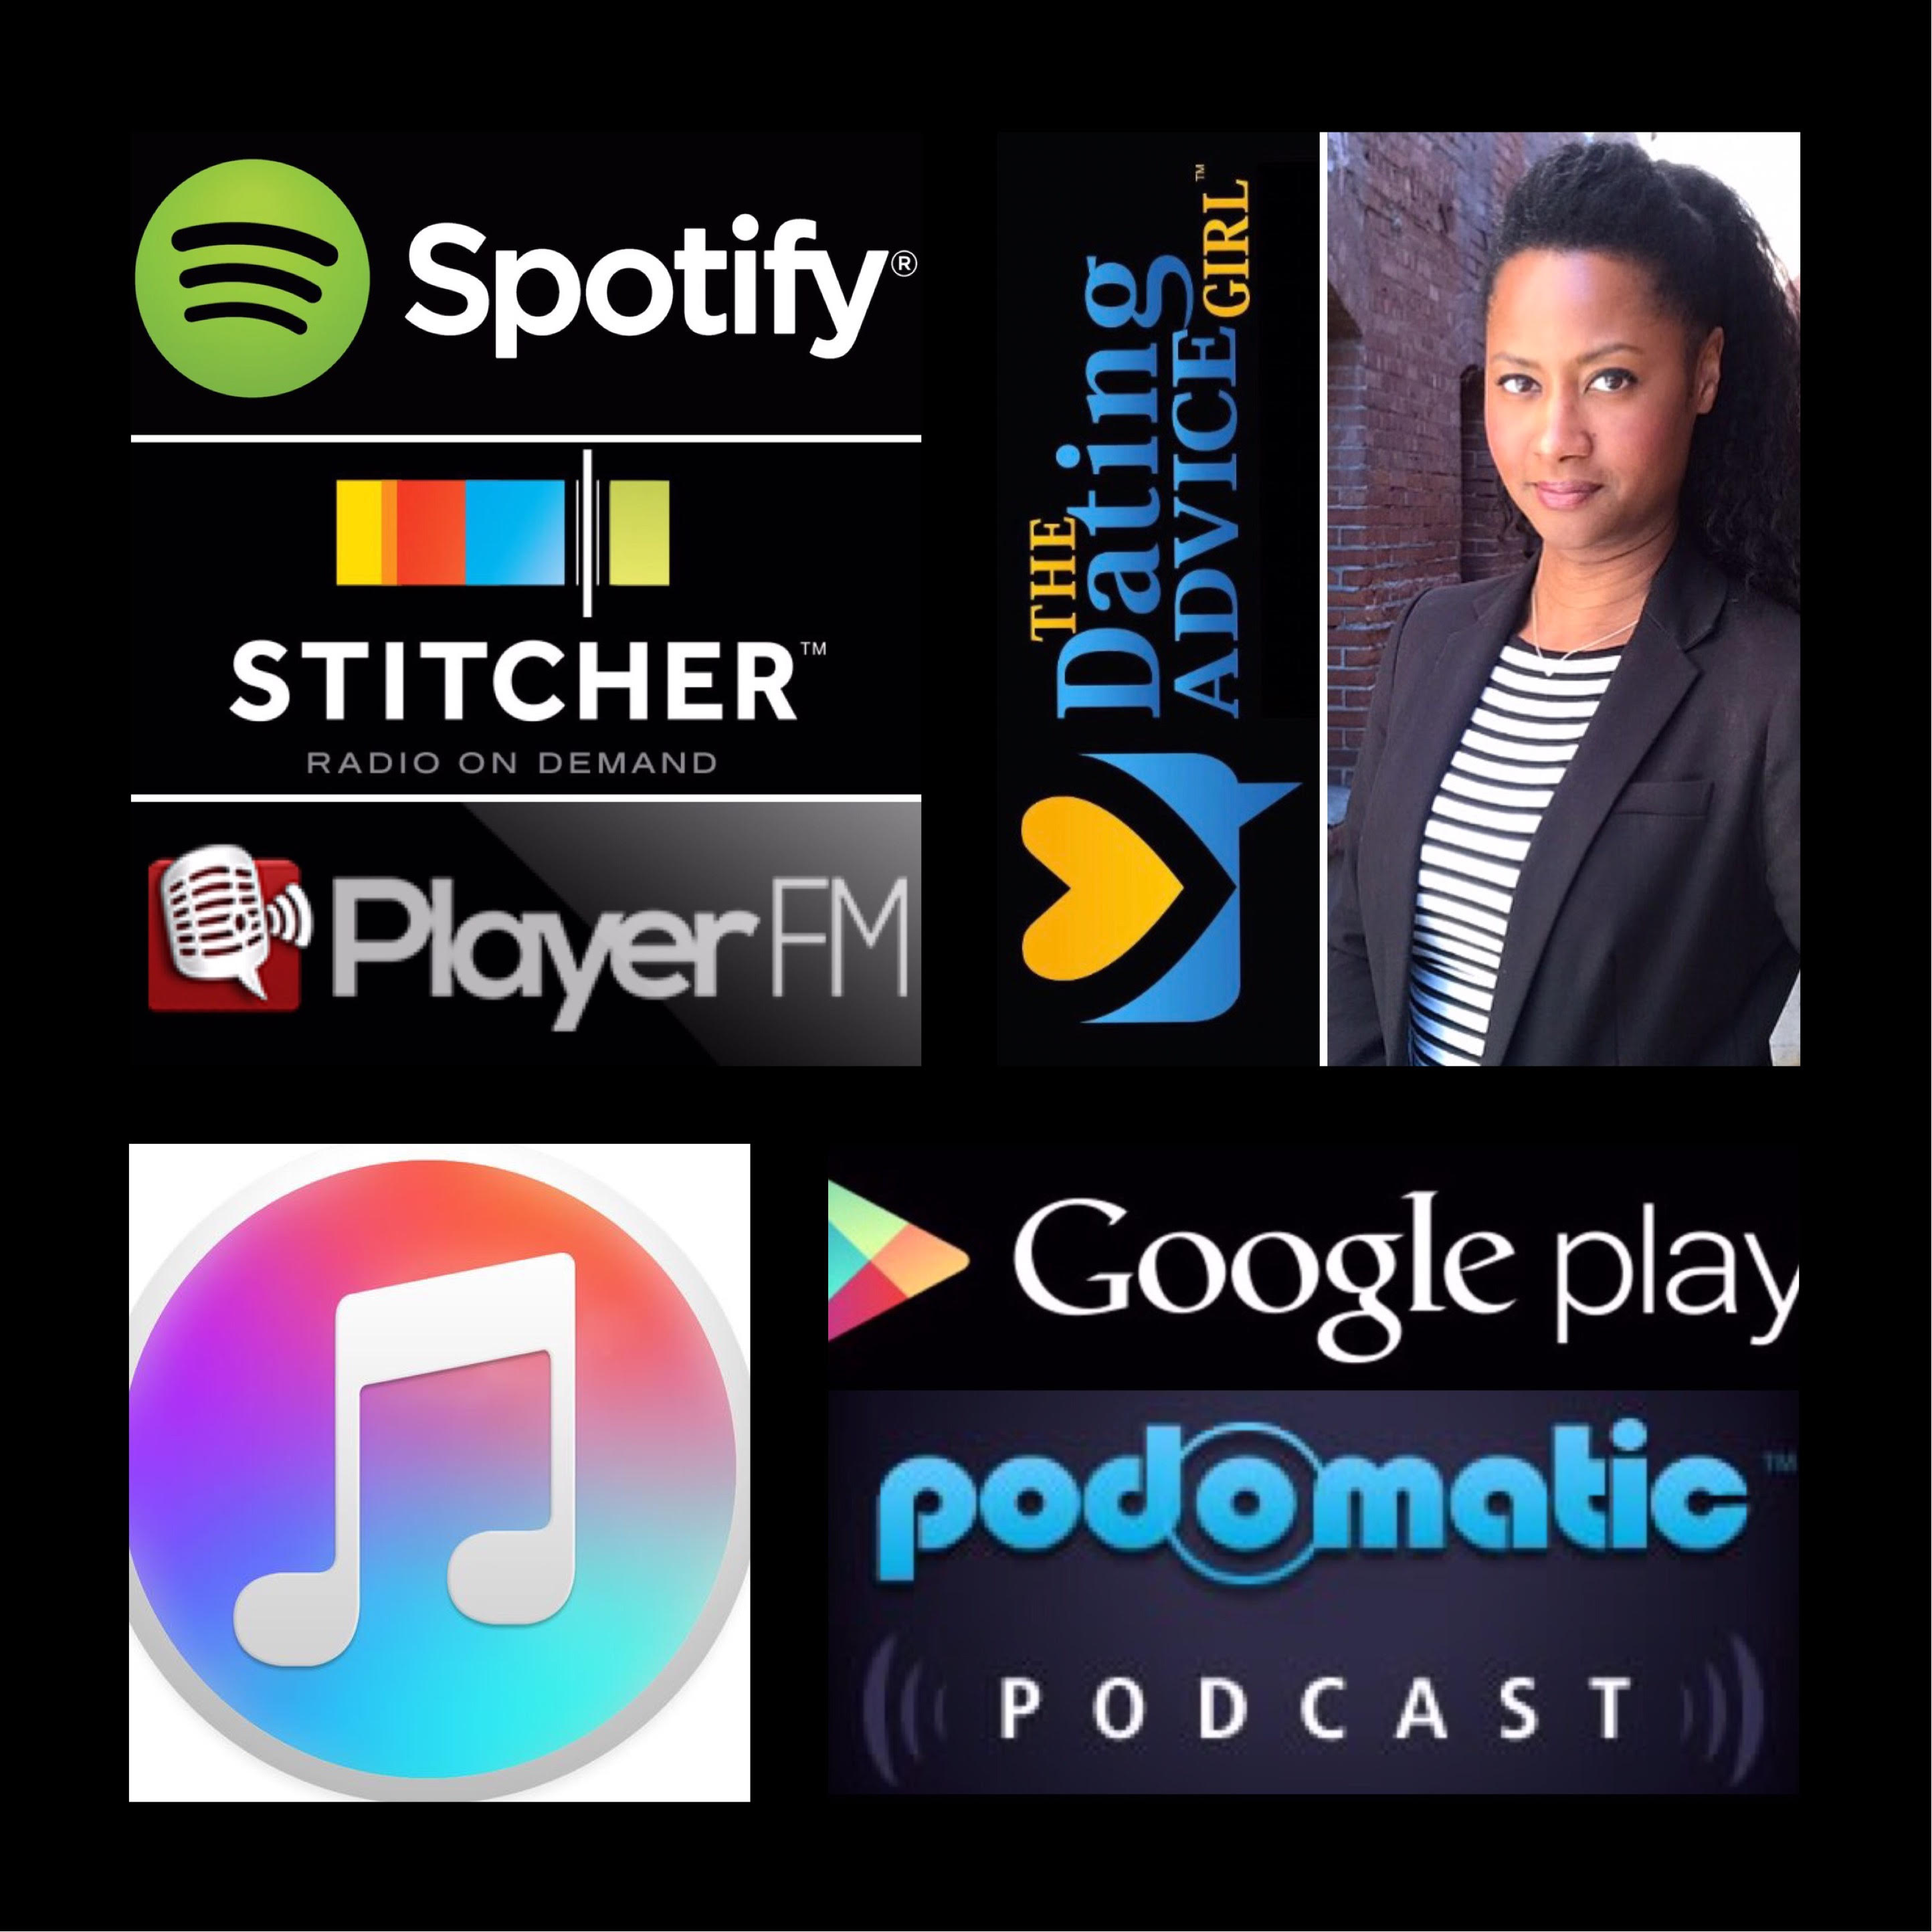 dating advice for women podcasts free online 2017